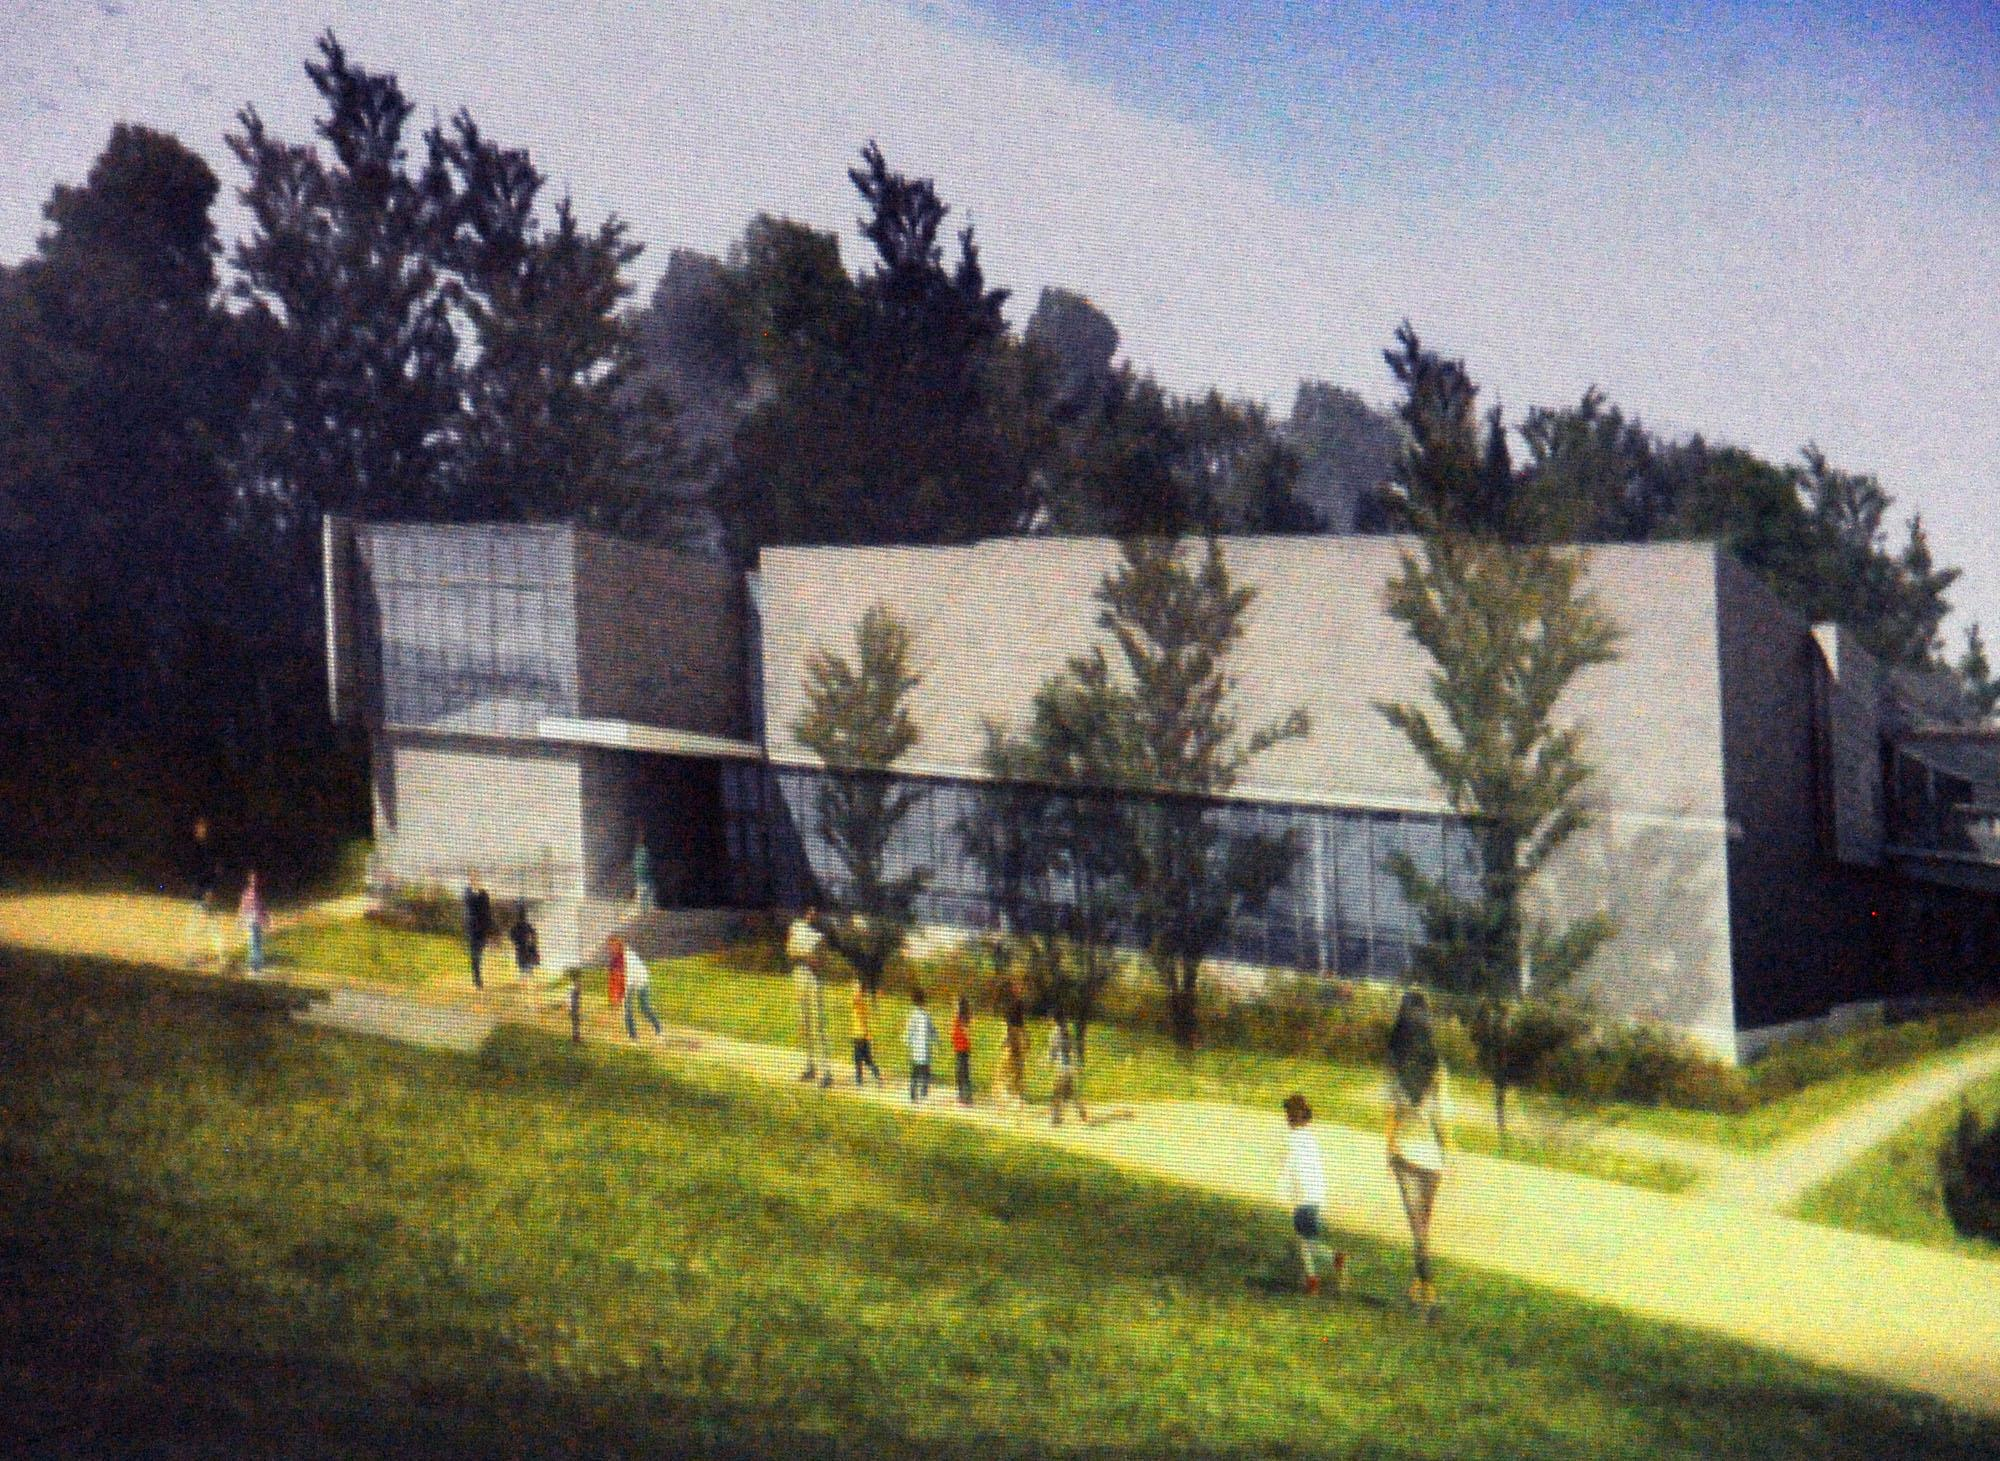 Greenwich S New Leb Building Committee Gears Up For Busy